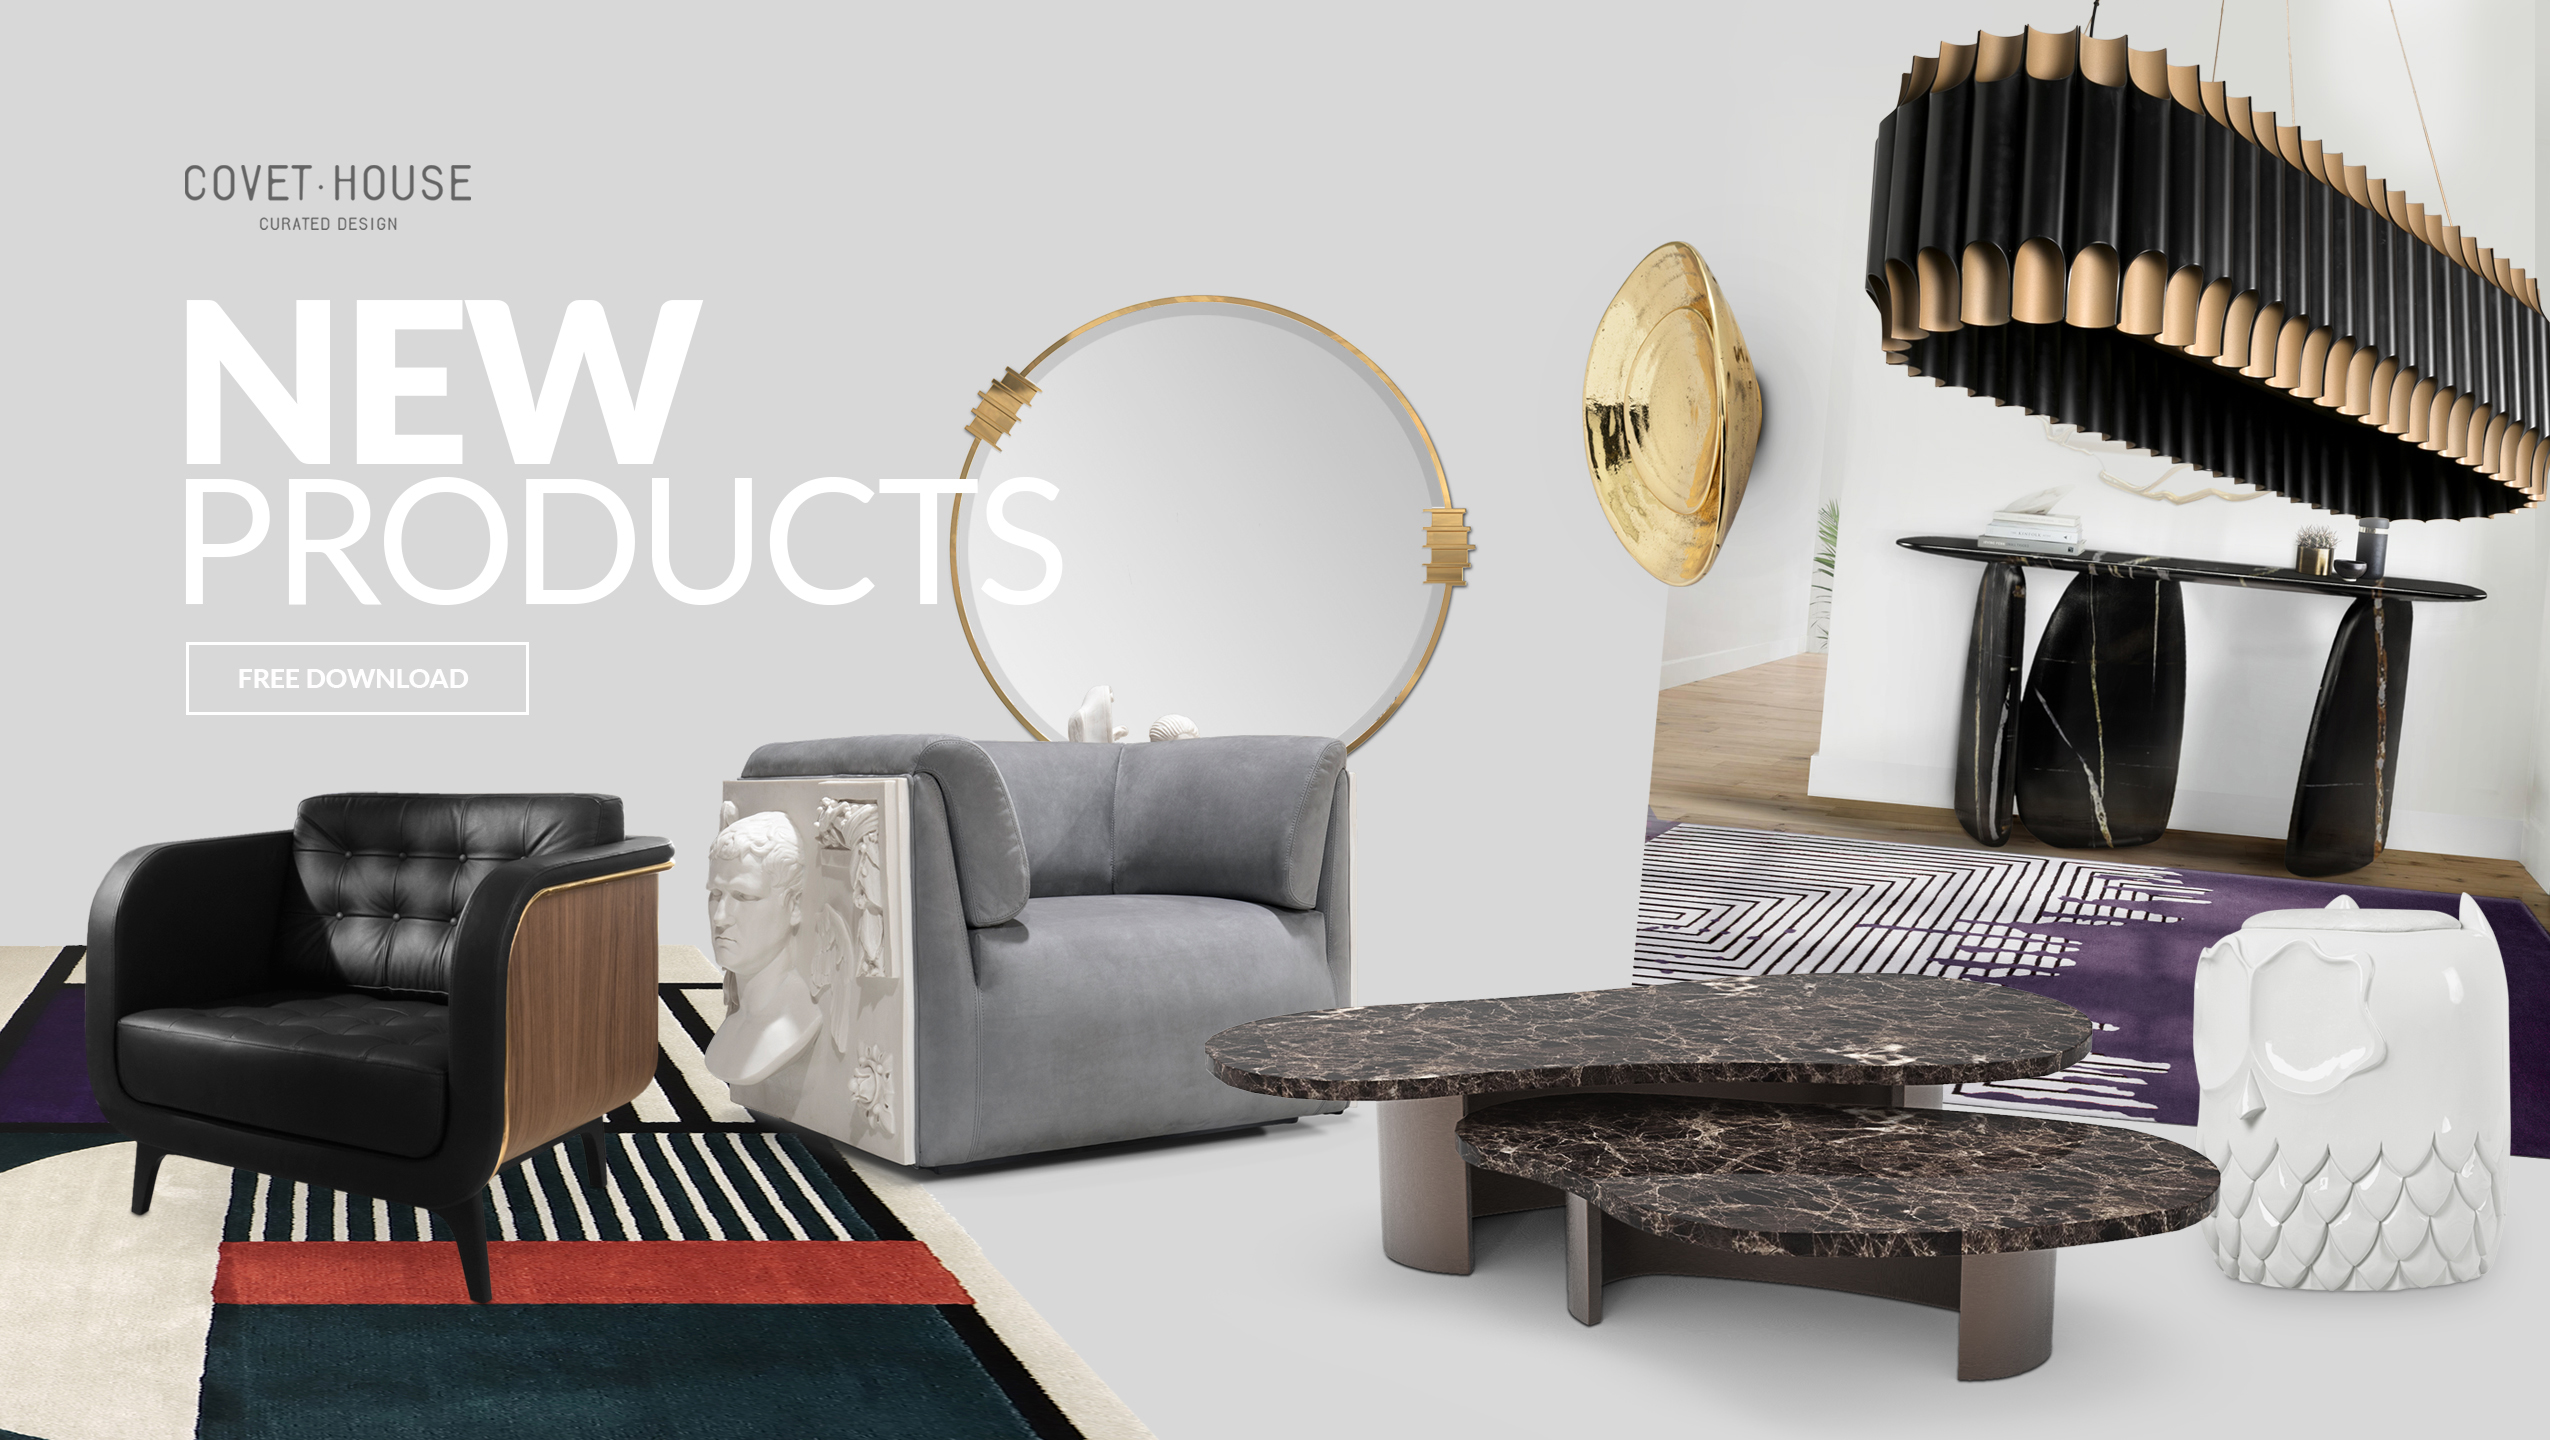 New Products 2020 maison et objet Maison Et Objet: Trend And Highlight Inspirations For 2020 newproducts cta1